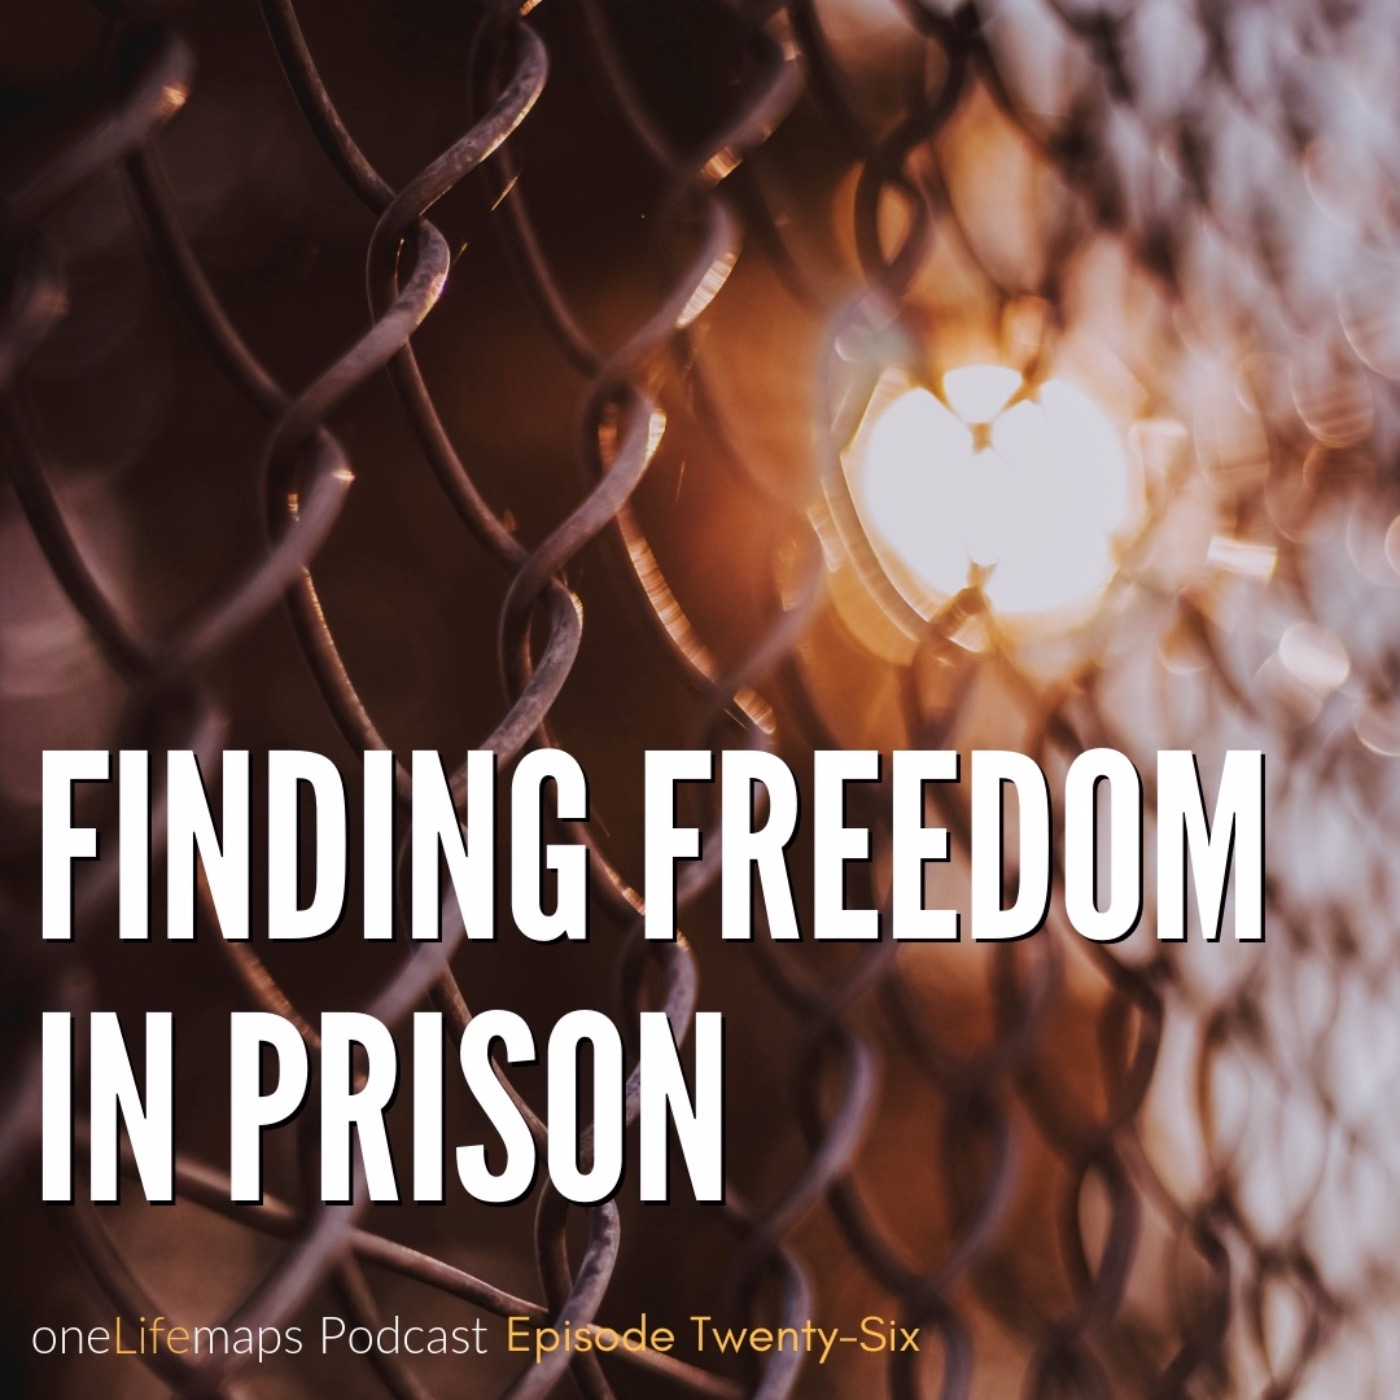 Finding Freedom in Prison